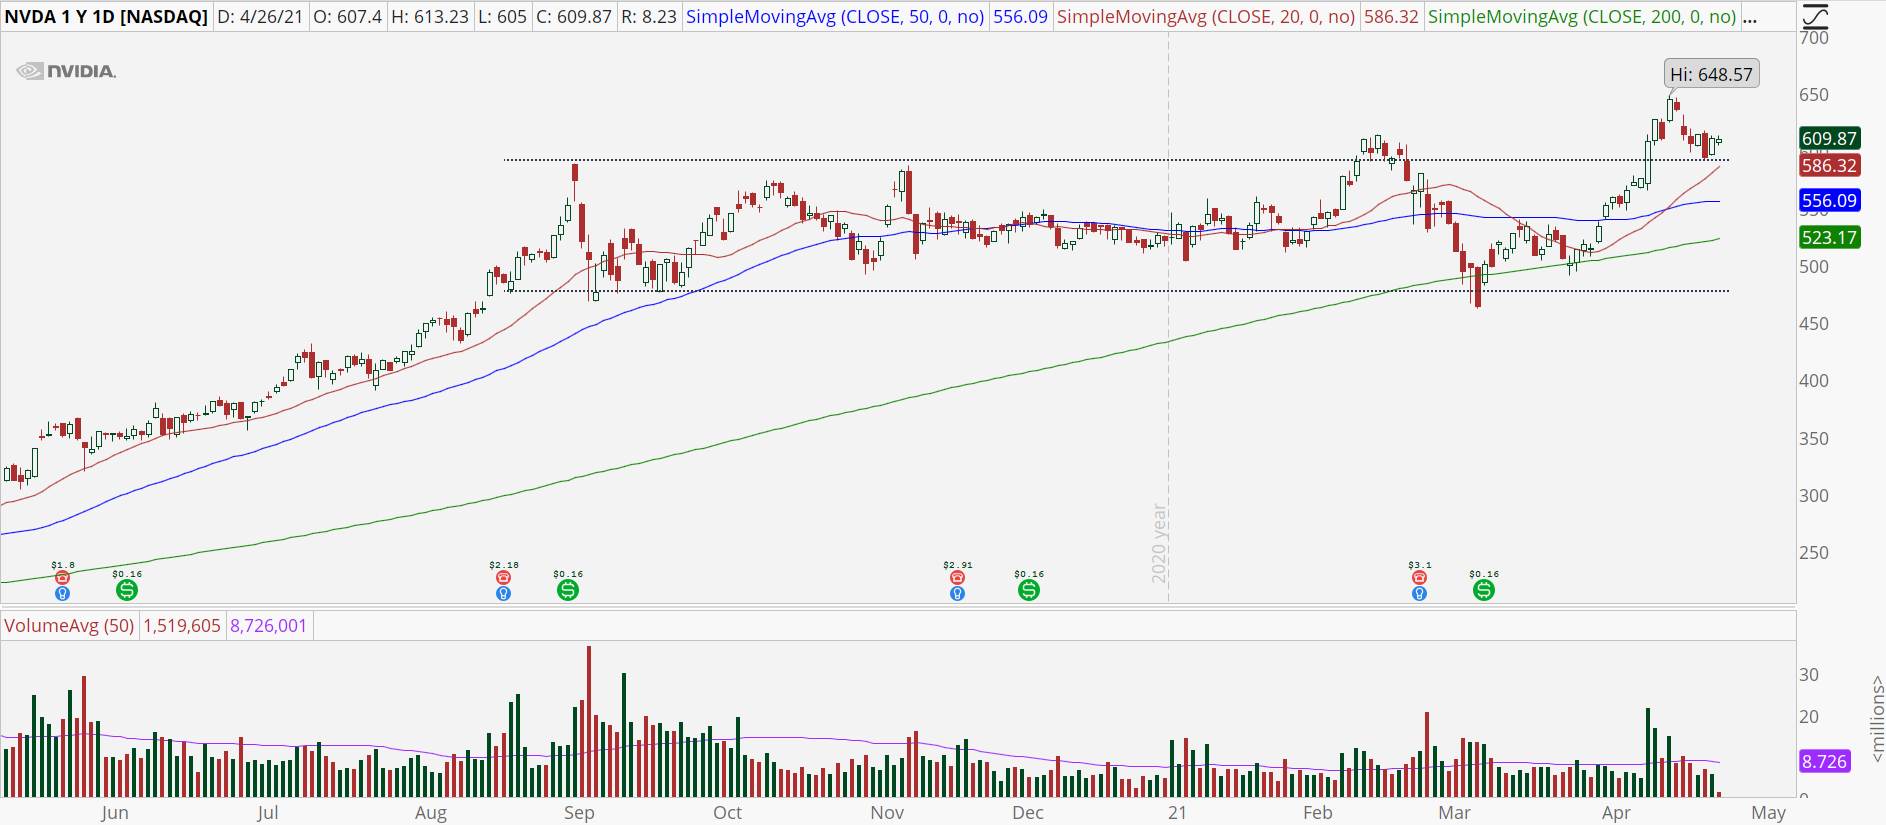 Nvidia (NVDA) stock chart with bull retracement pattern.